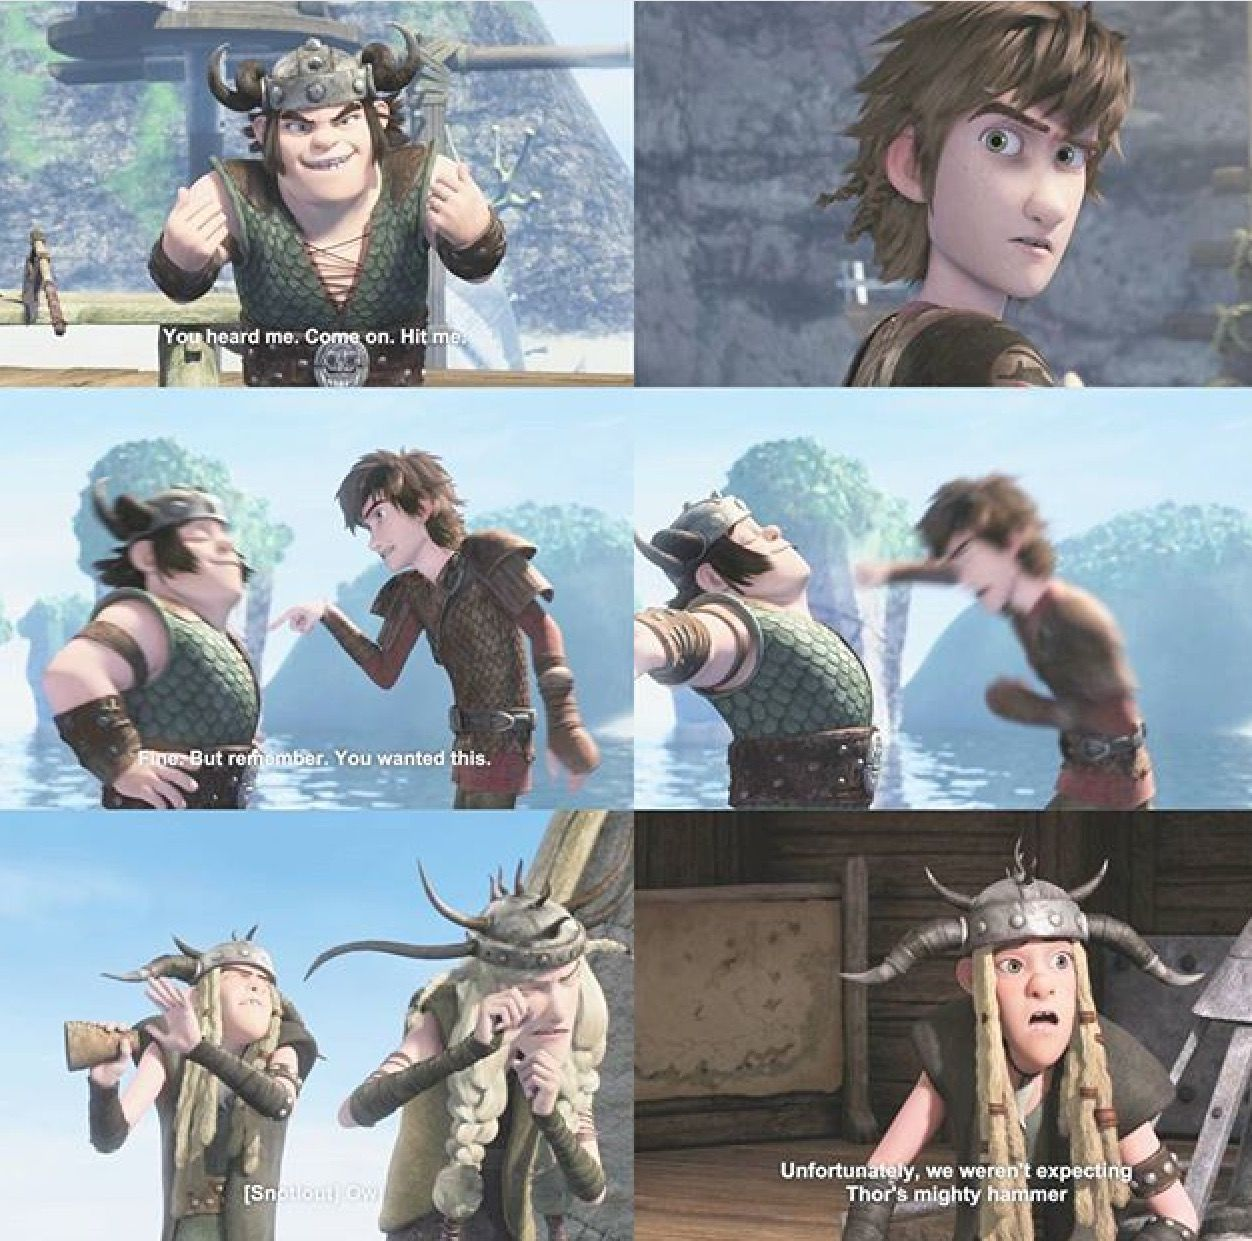 Who knew that Hiccup could throw a punch like that? I'm